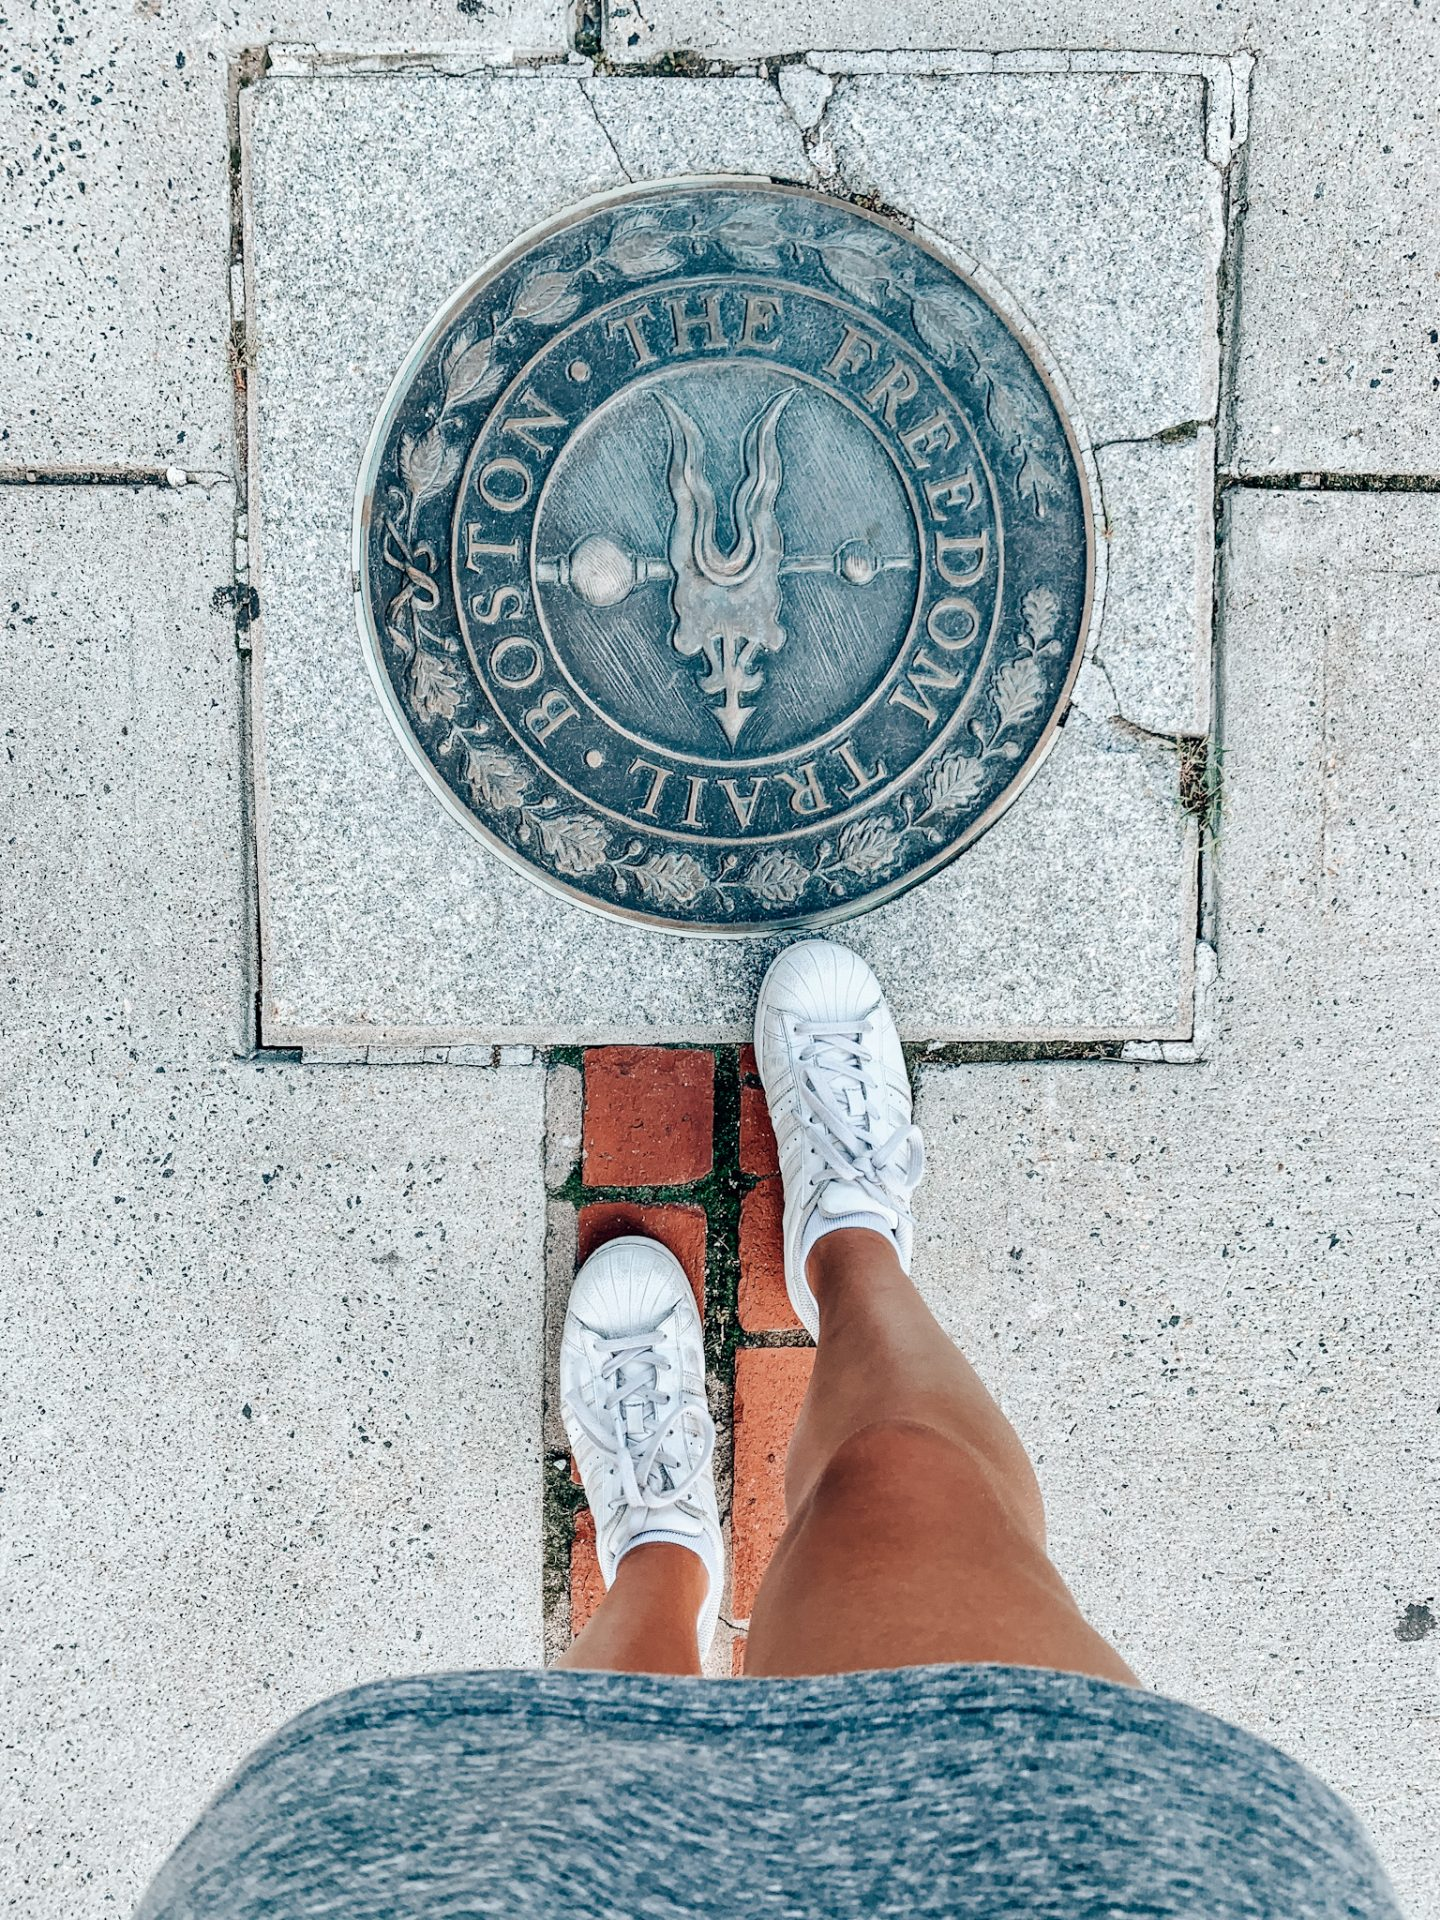 Standing at the start of the Freedom Trail in Boston, MA